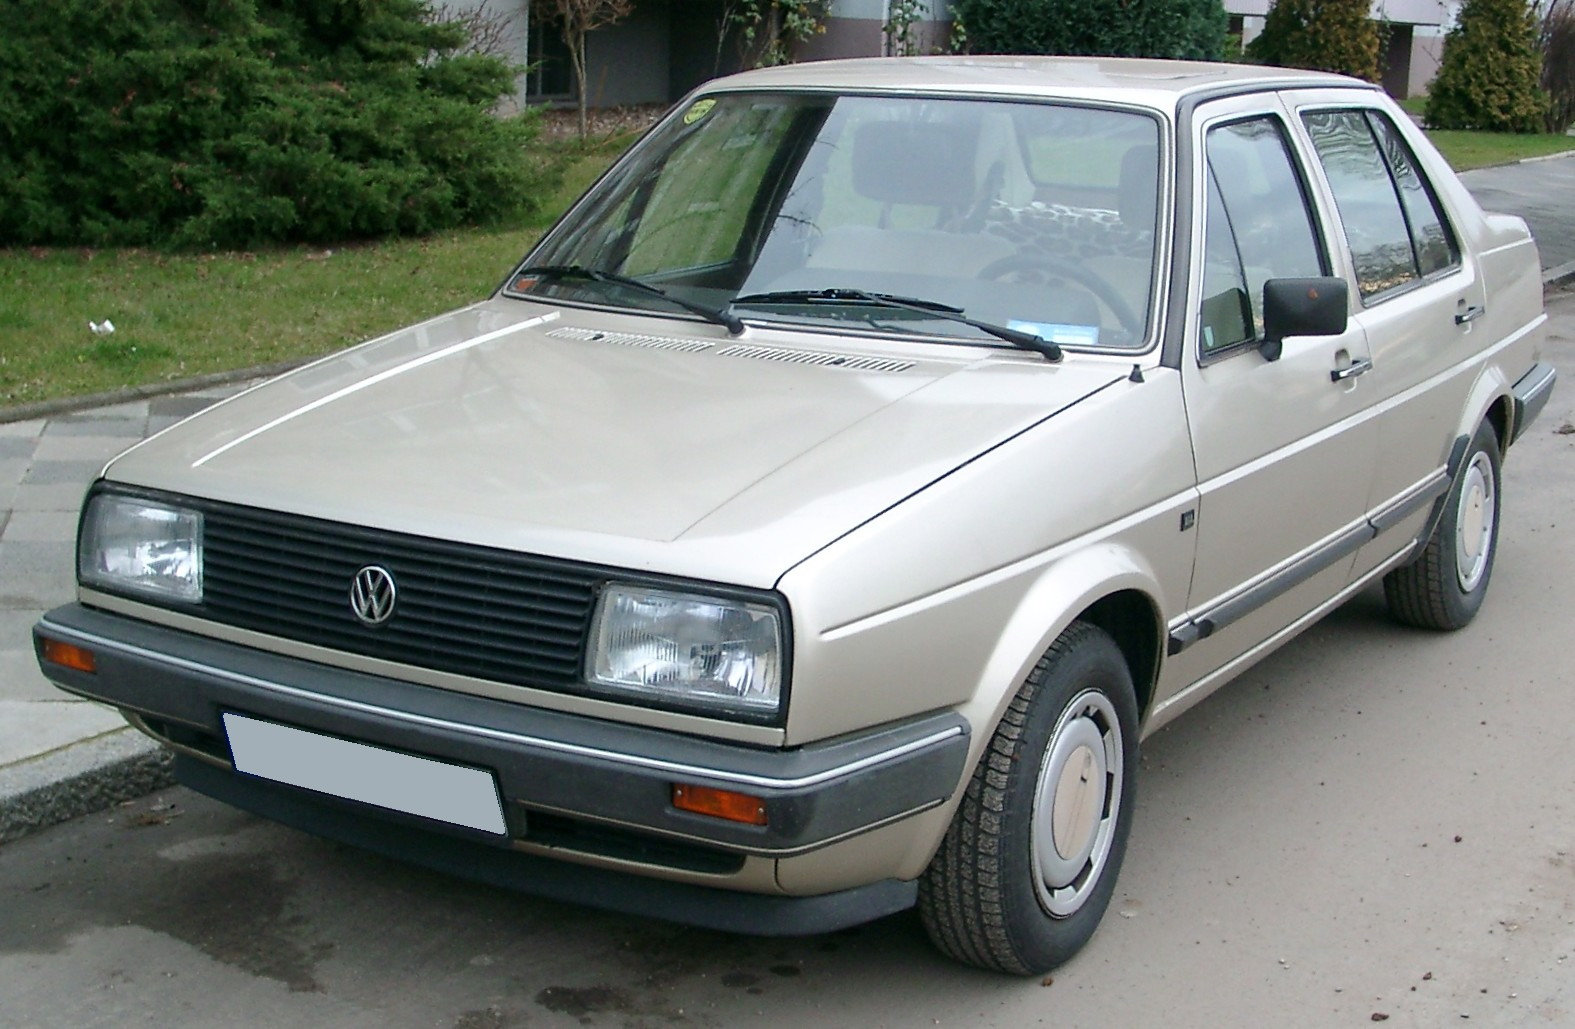 Volkswagen Jetta 1987 photo - 3